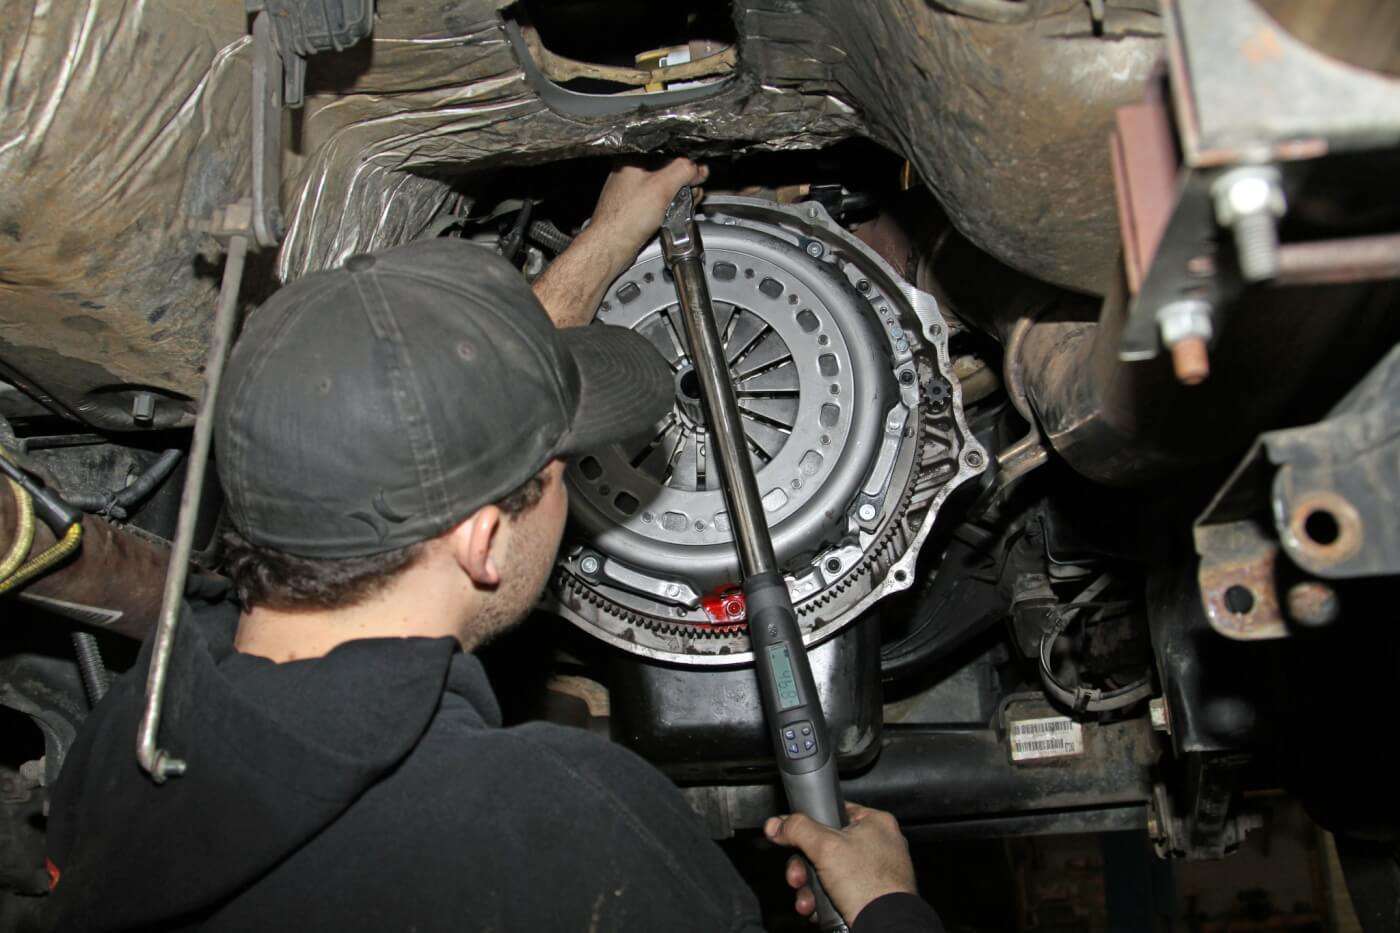 15. Next, he used the supplied clutch alignment tool to position the clutch discs and intermediate plate before installing the pressure plate and torqueing those mounting bolts to 45 ft-lbs.